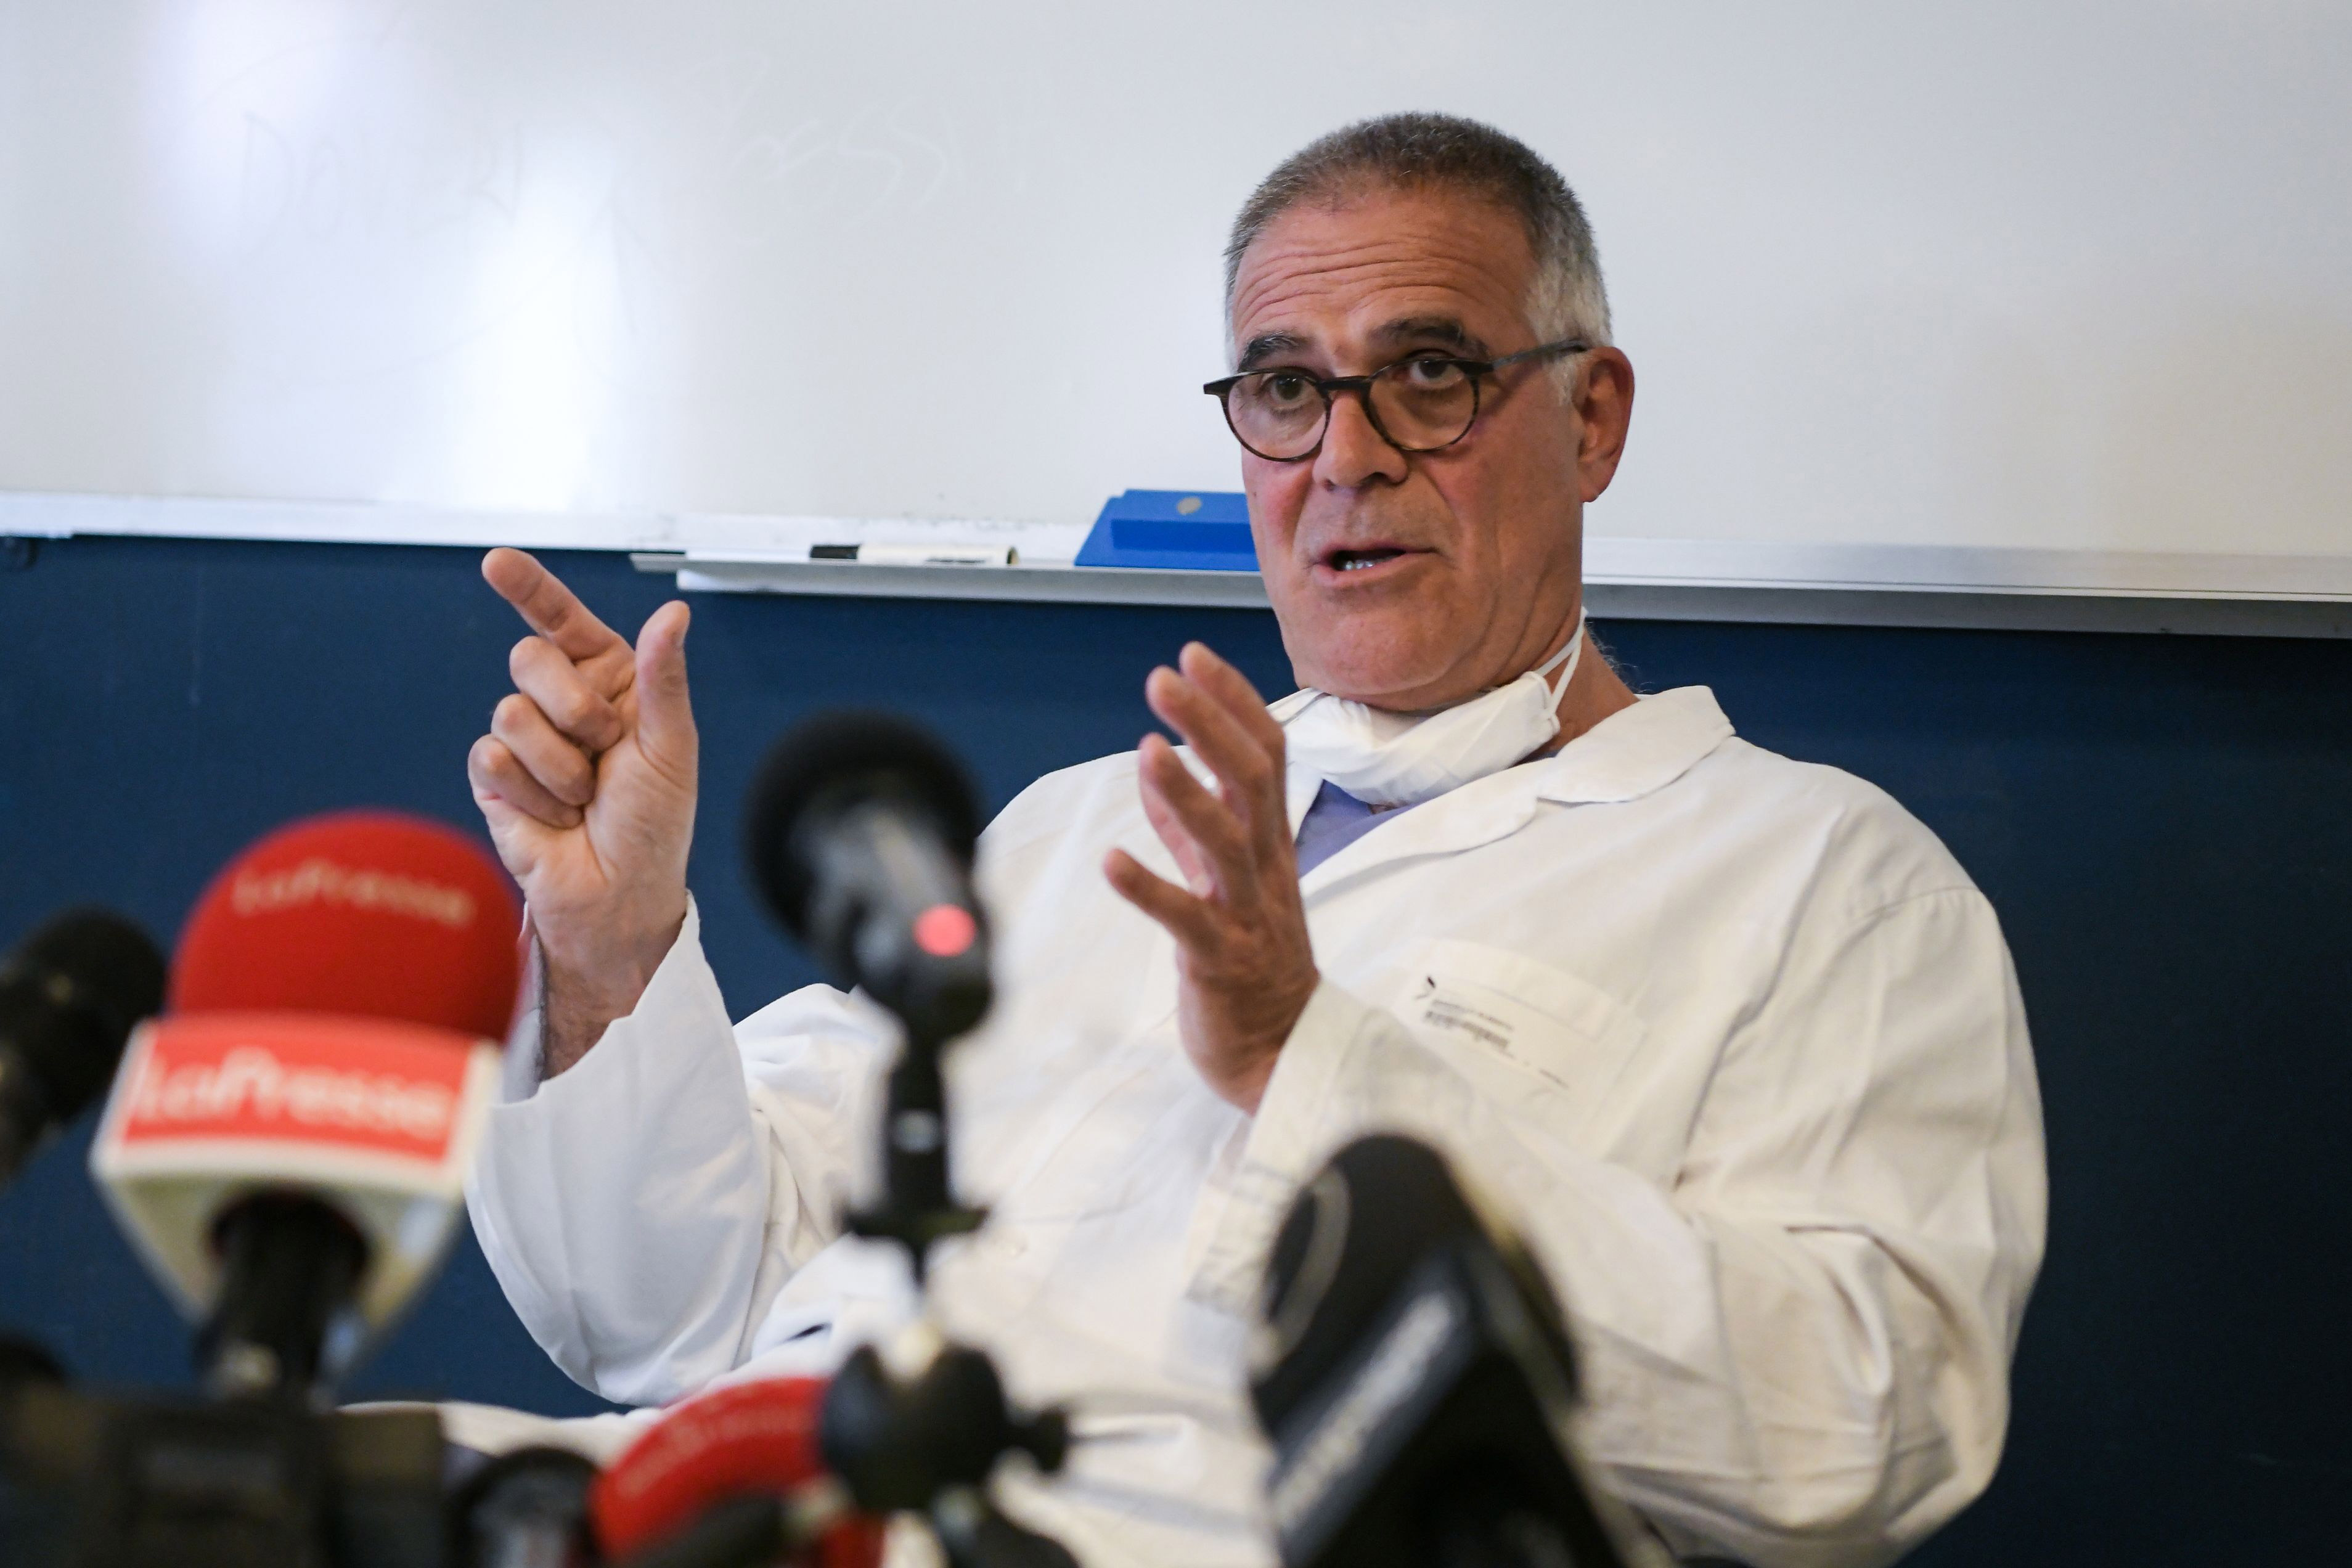 Italian professor Alberto Zangrillo, personal doctor of former Italian prime minister Silvio Berlusconi, speaks during a press conference at the San Raffaele Hospital in Milan, on September 4.